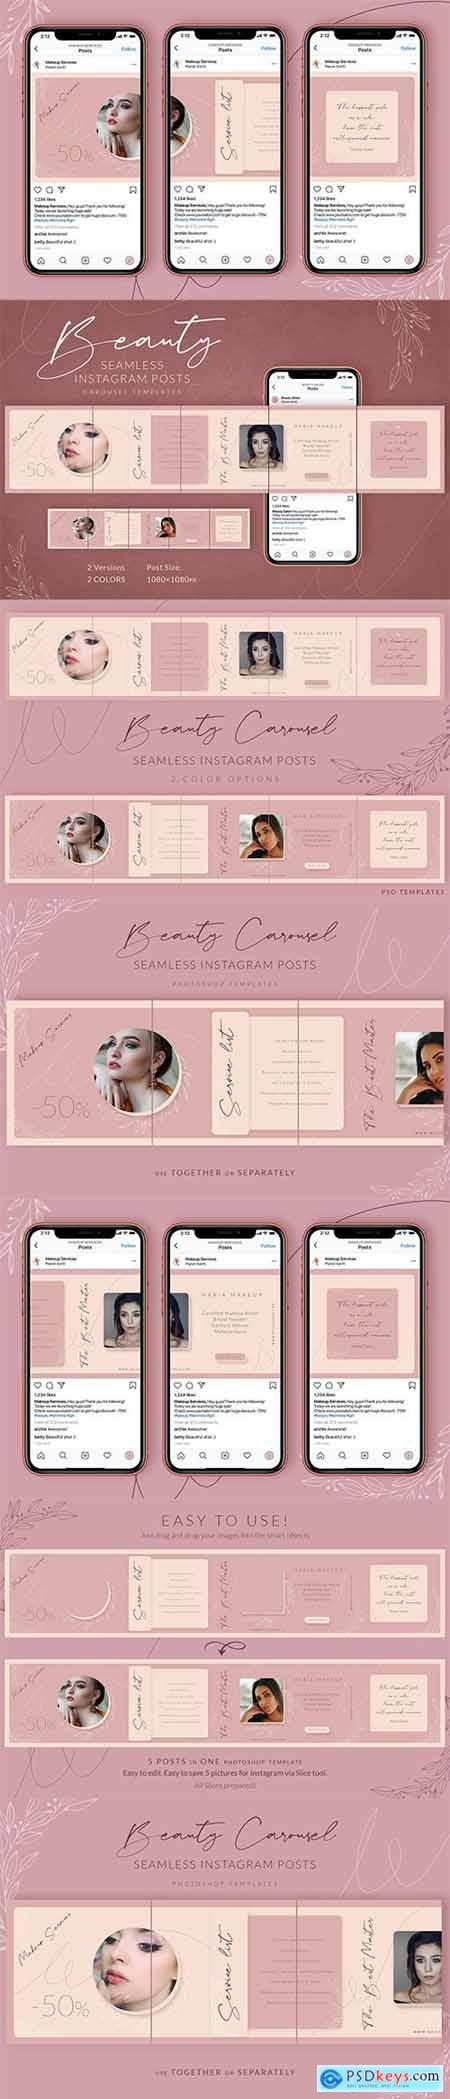 Beauty Instagram Carousel Posts